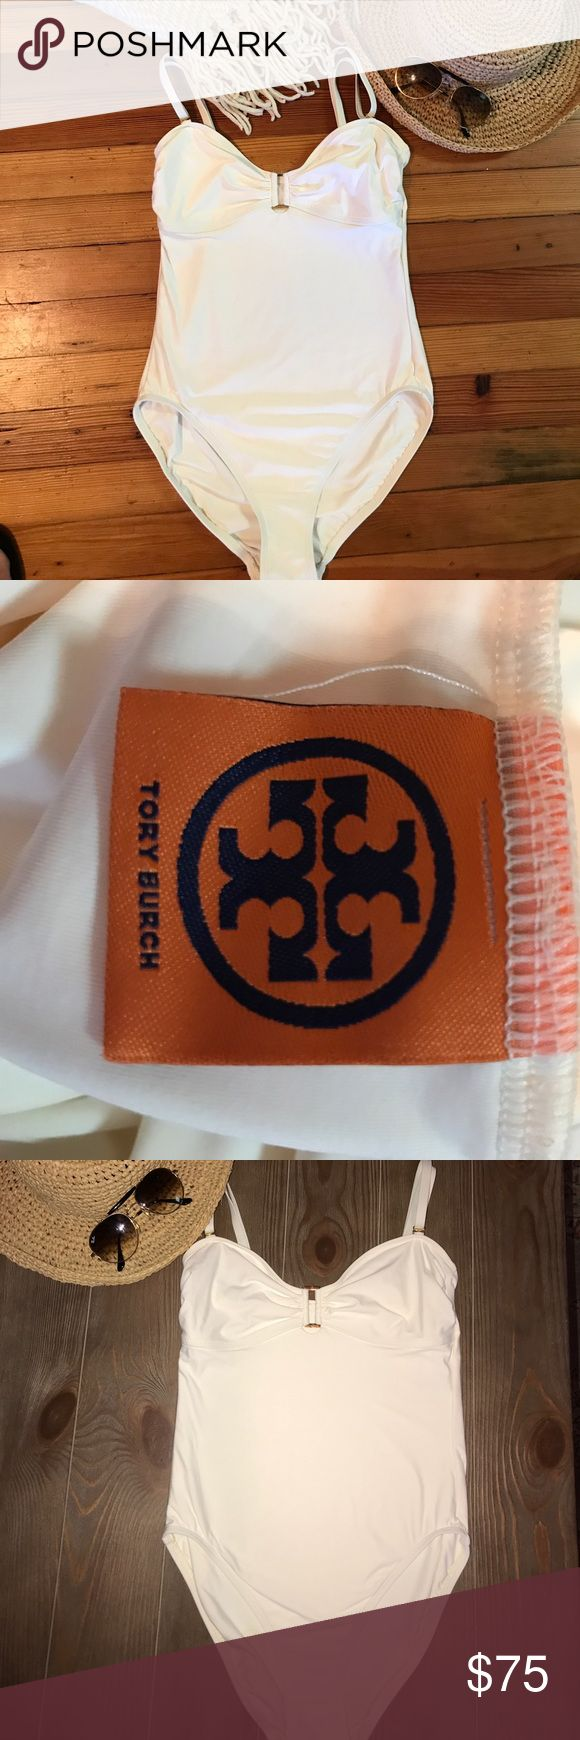 TORY BURCH CREAM SWIMSUITS!🌴🌞 Beautiful swimsuit! Never wore. Sanitary liner still intact. I have way to many swimsuits!!😐 GORGEOUS SUIT!! Never outdated!! Tory Burch Swim One Pieces